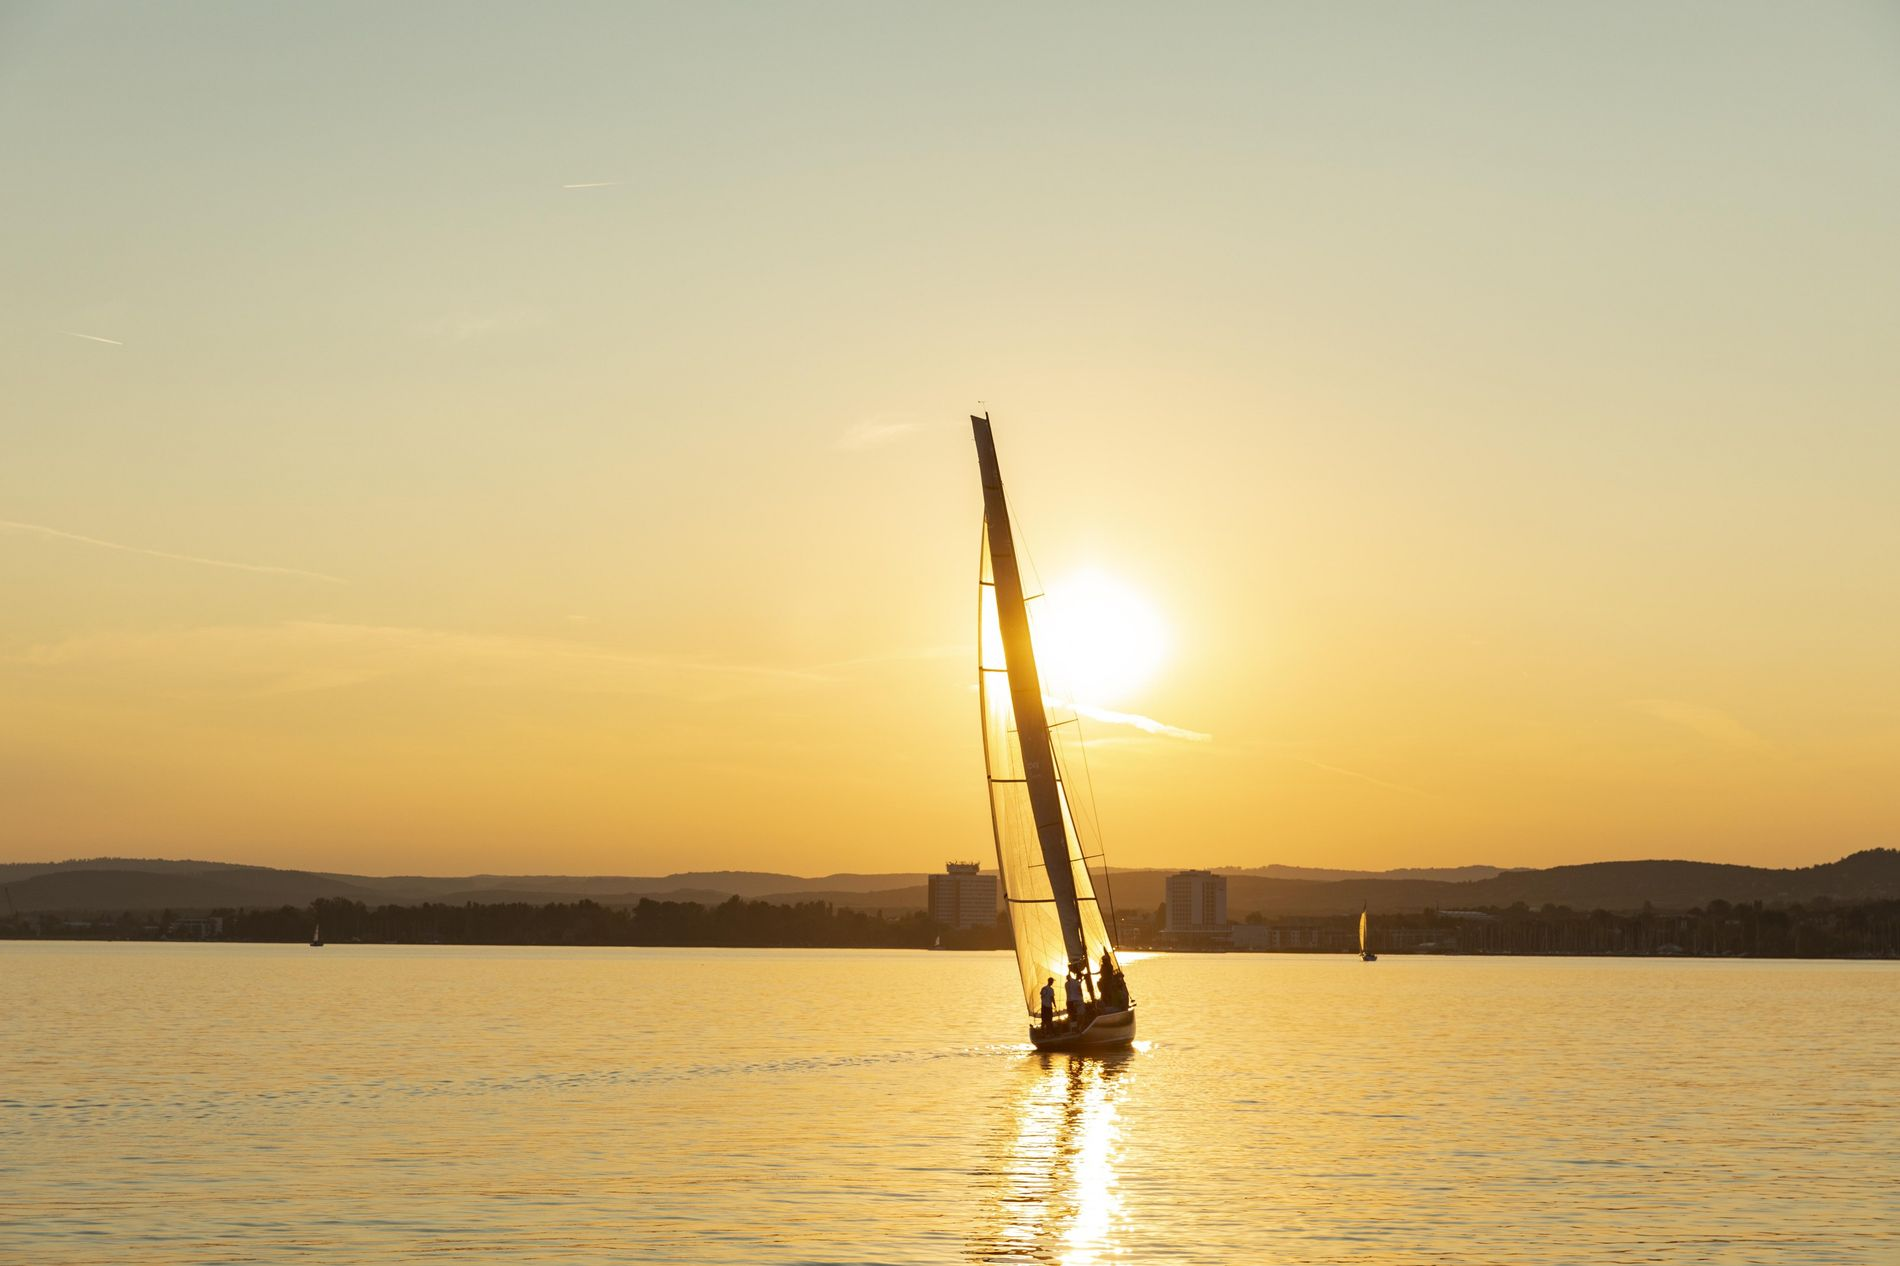 A sole sailboat glides on Lake Balaton, central Europe's largest lake, where Hungarians flock for fun ...